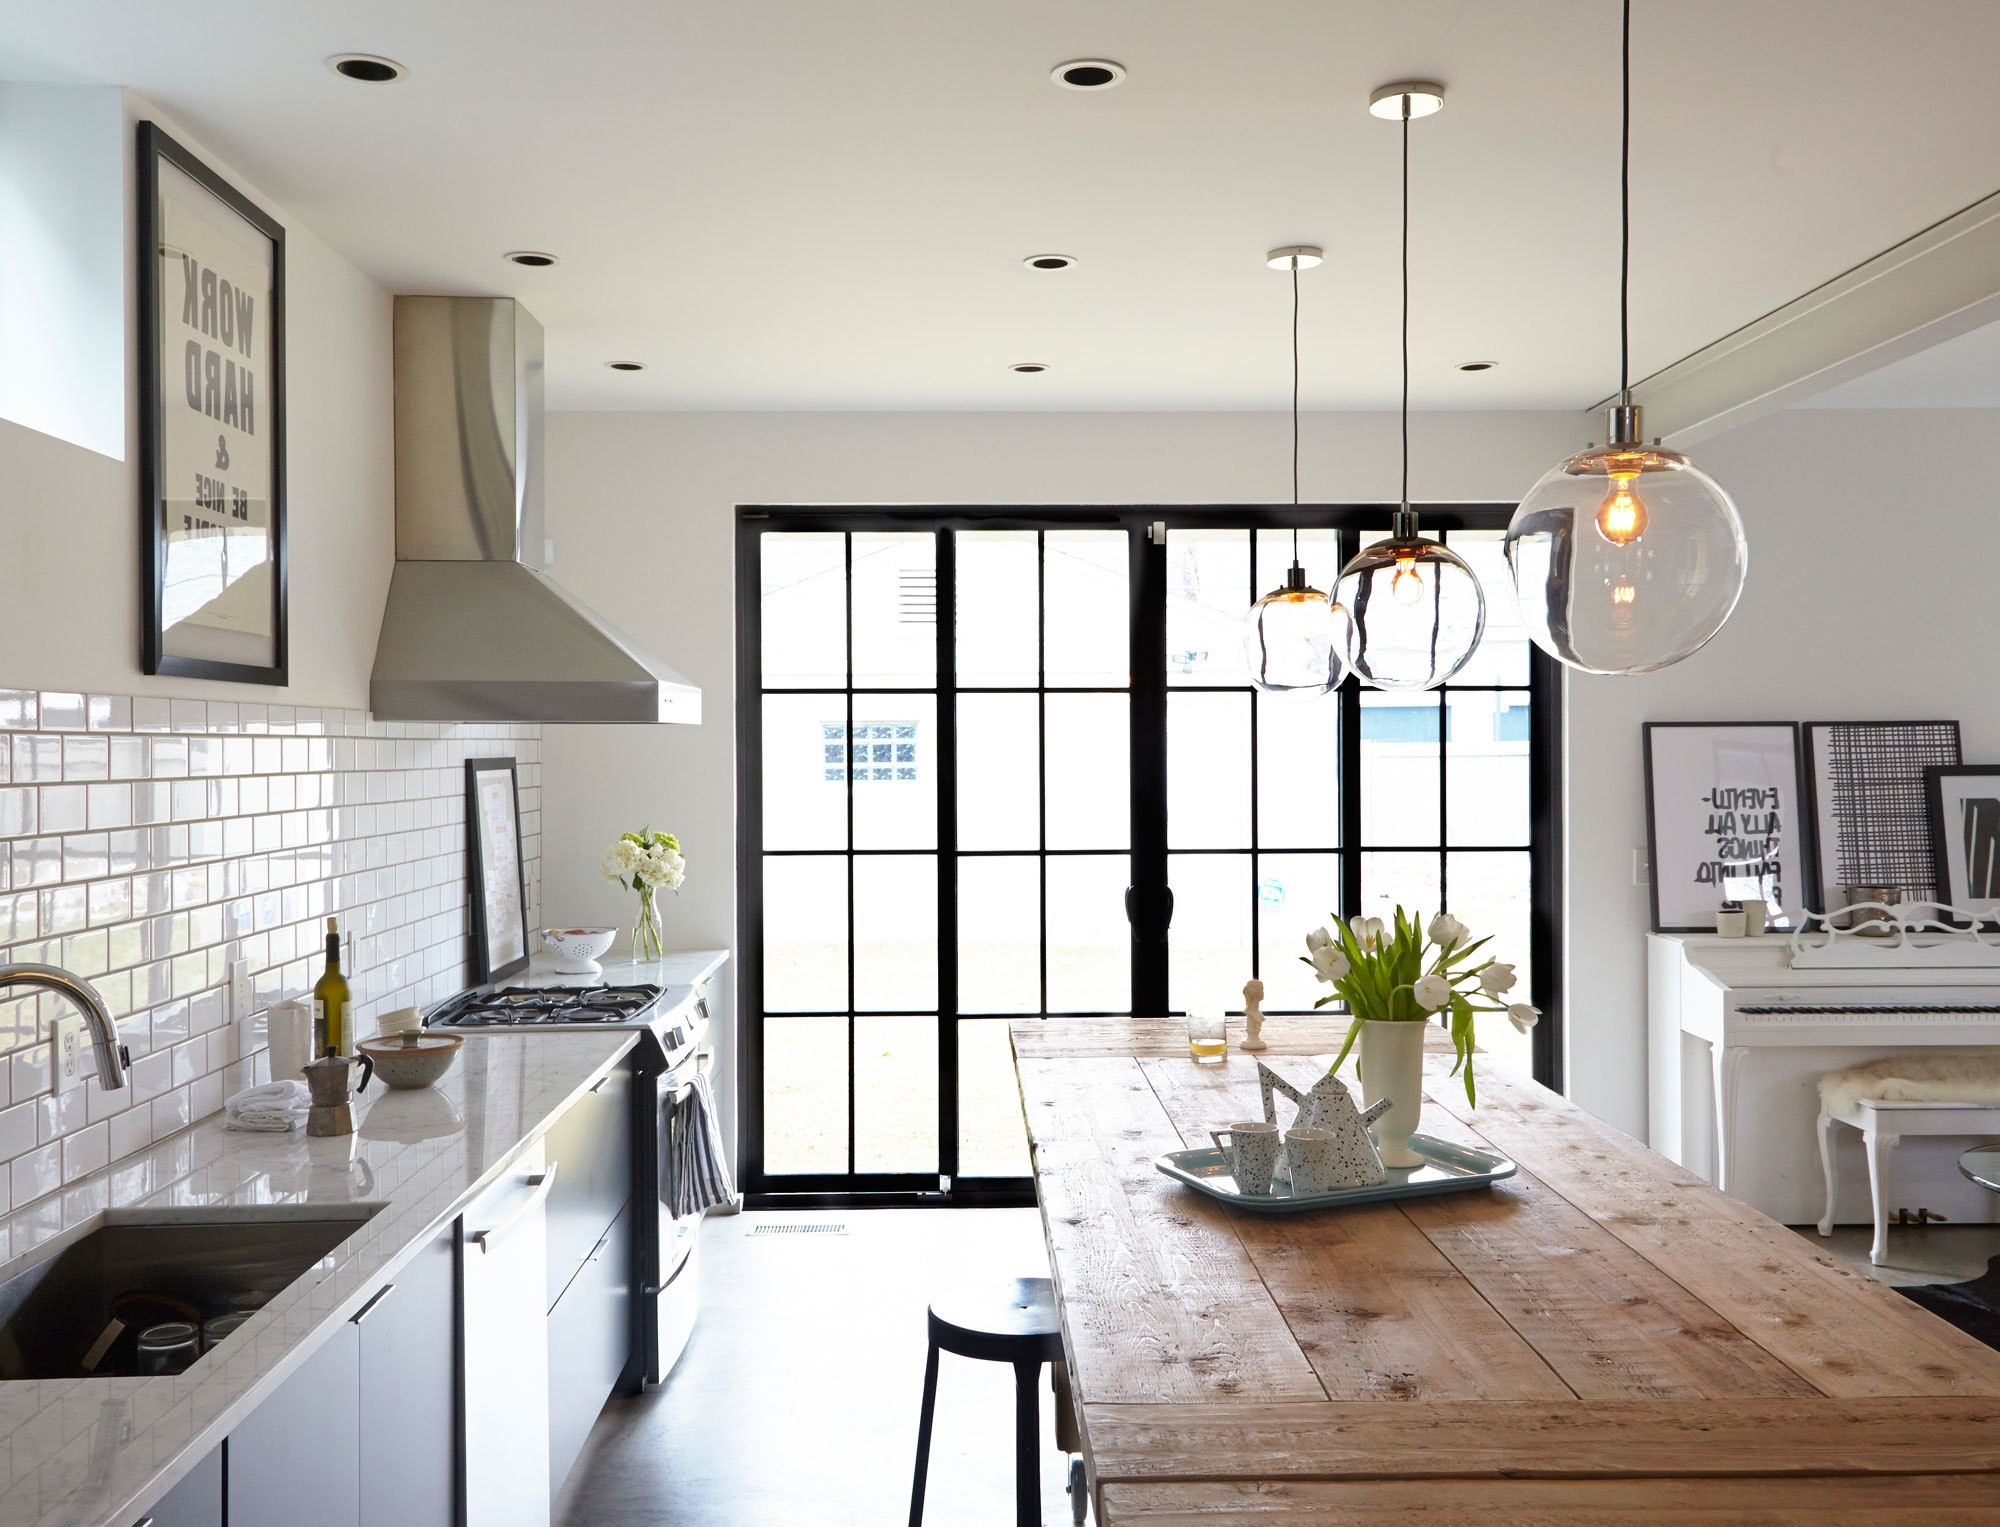 2018 Image 8452 From Post: Globe Pendant Lights Over Island – With 4 With Regard To Over Dining Tables Lights (Gallery 25 of 25)